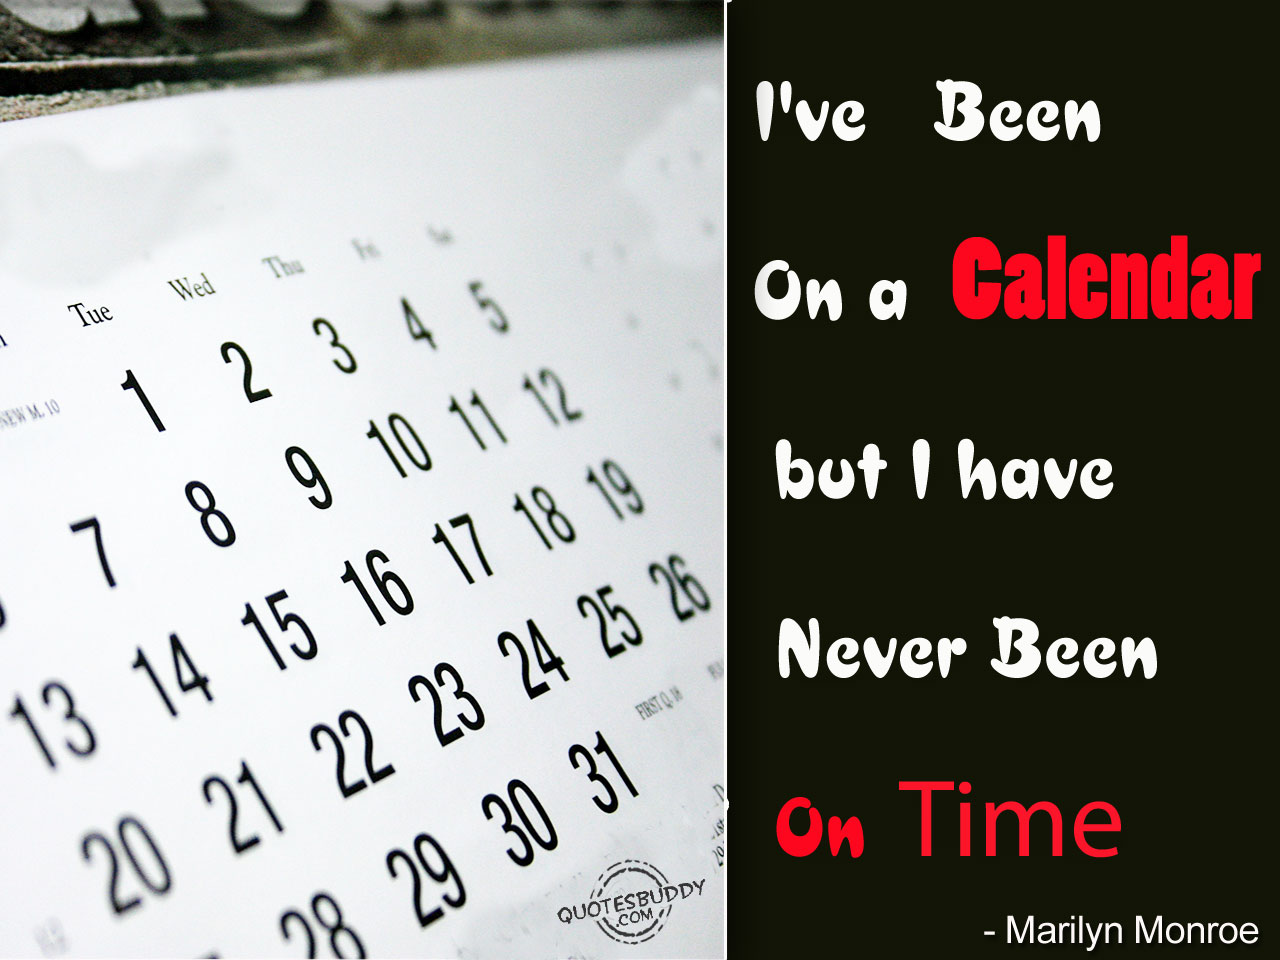 I've Been On A Calendar But I Have Never Been On Time